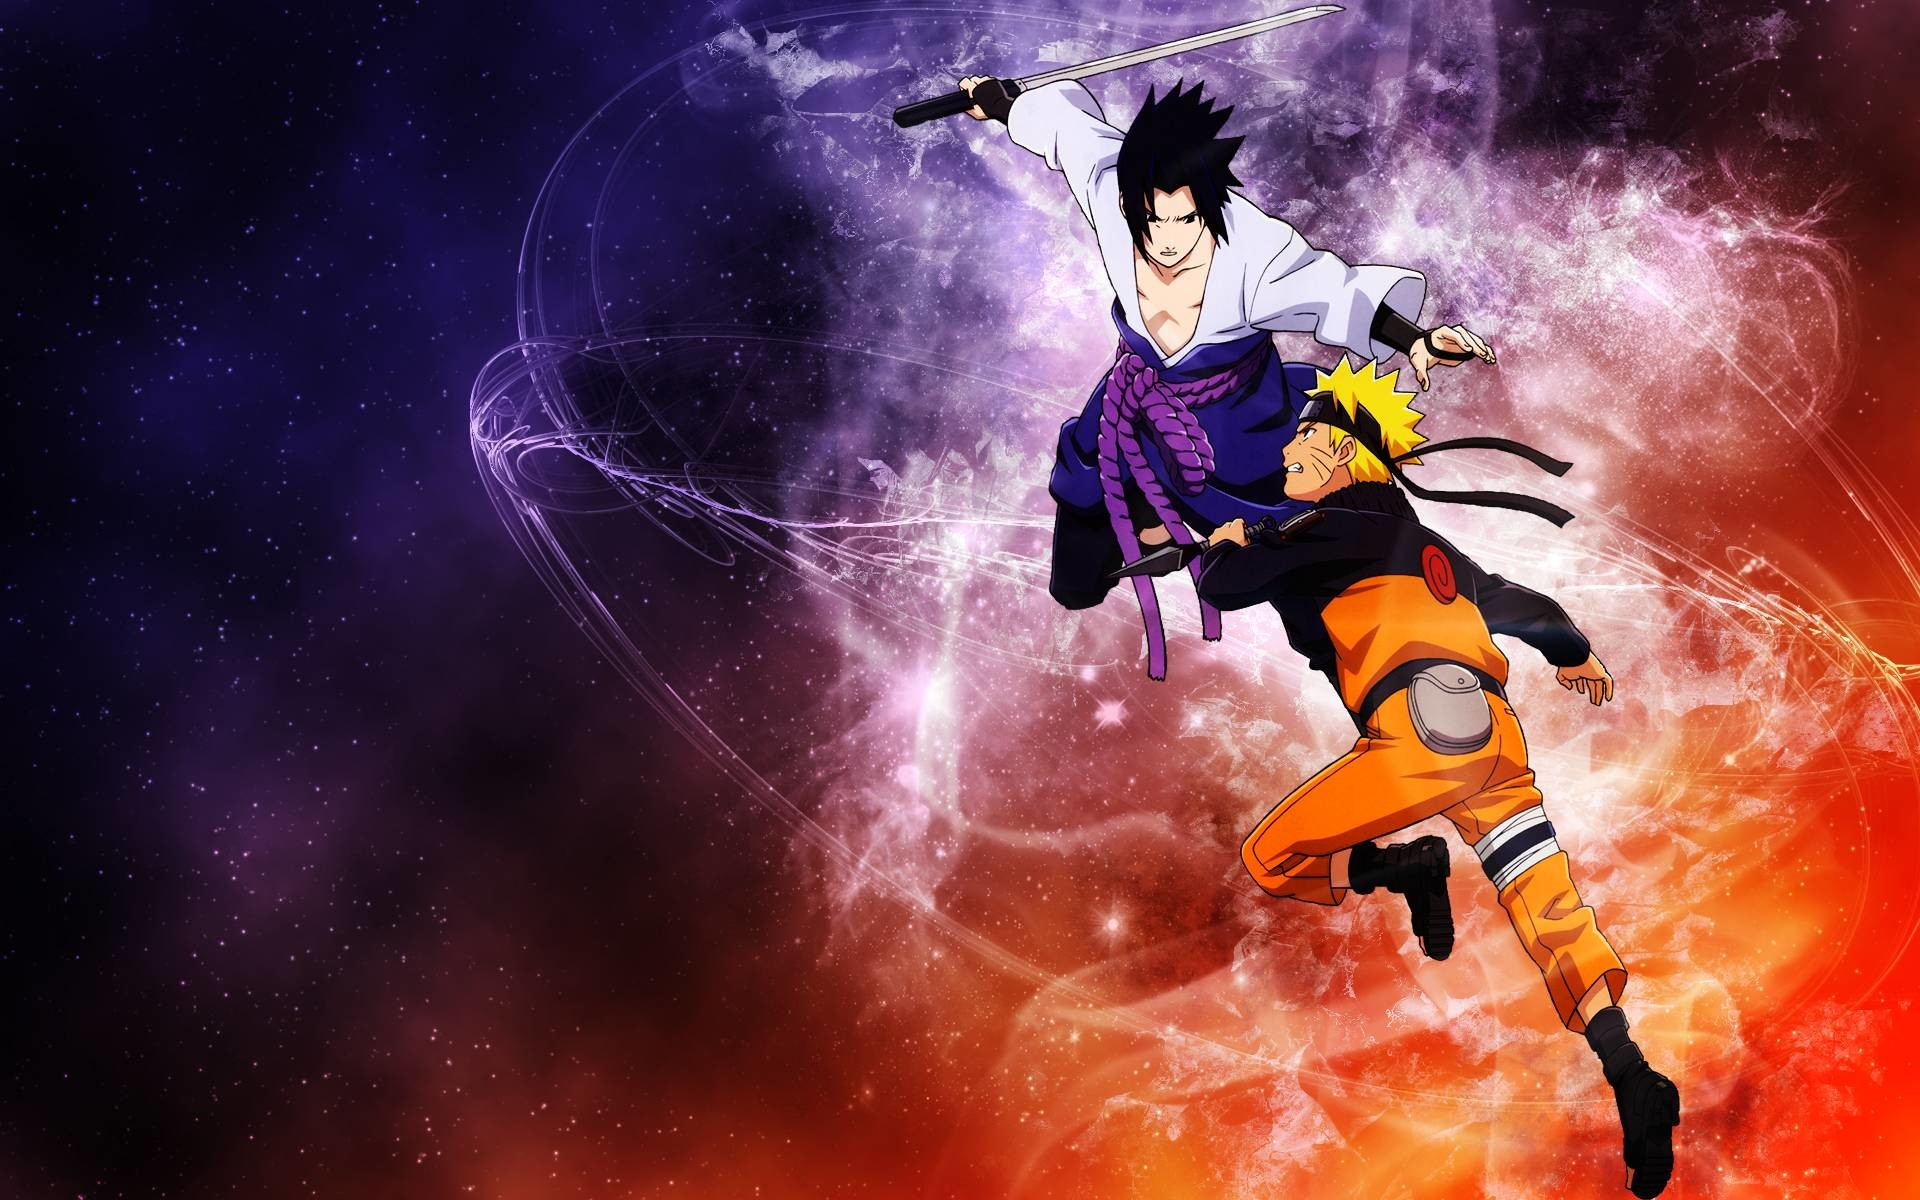 1920x1200 Naruto HD Wallpapers and Backgrounds